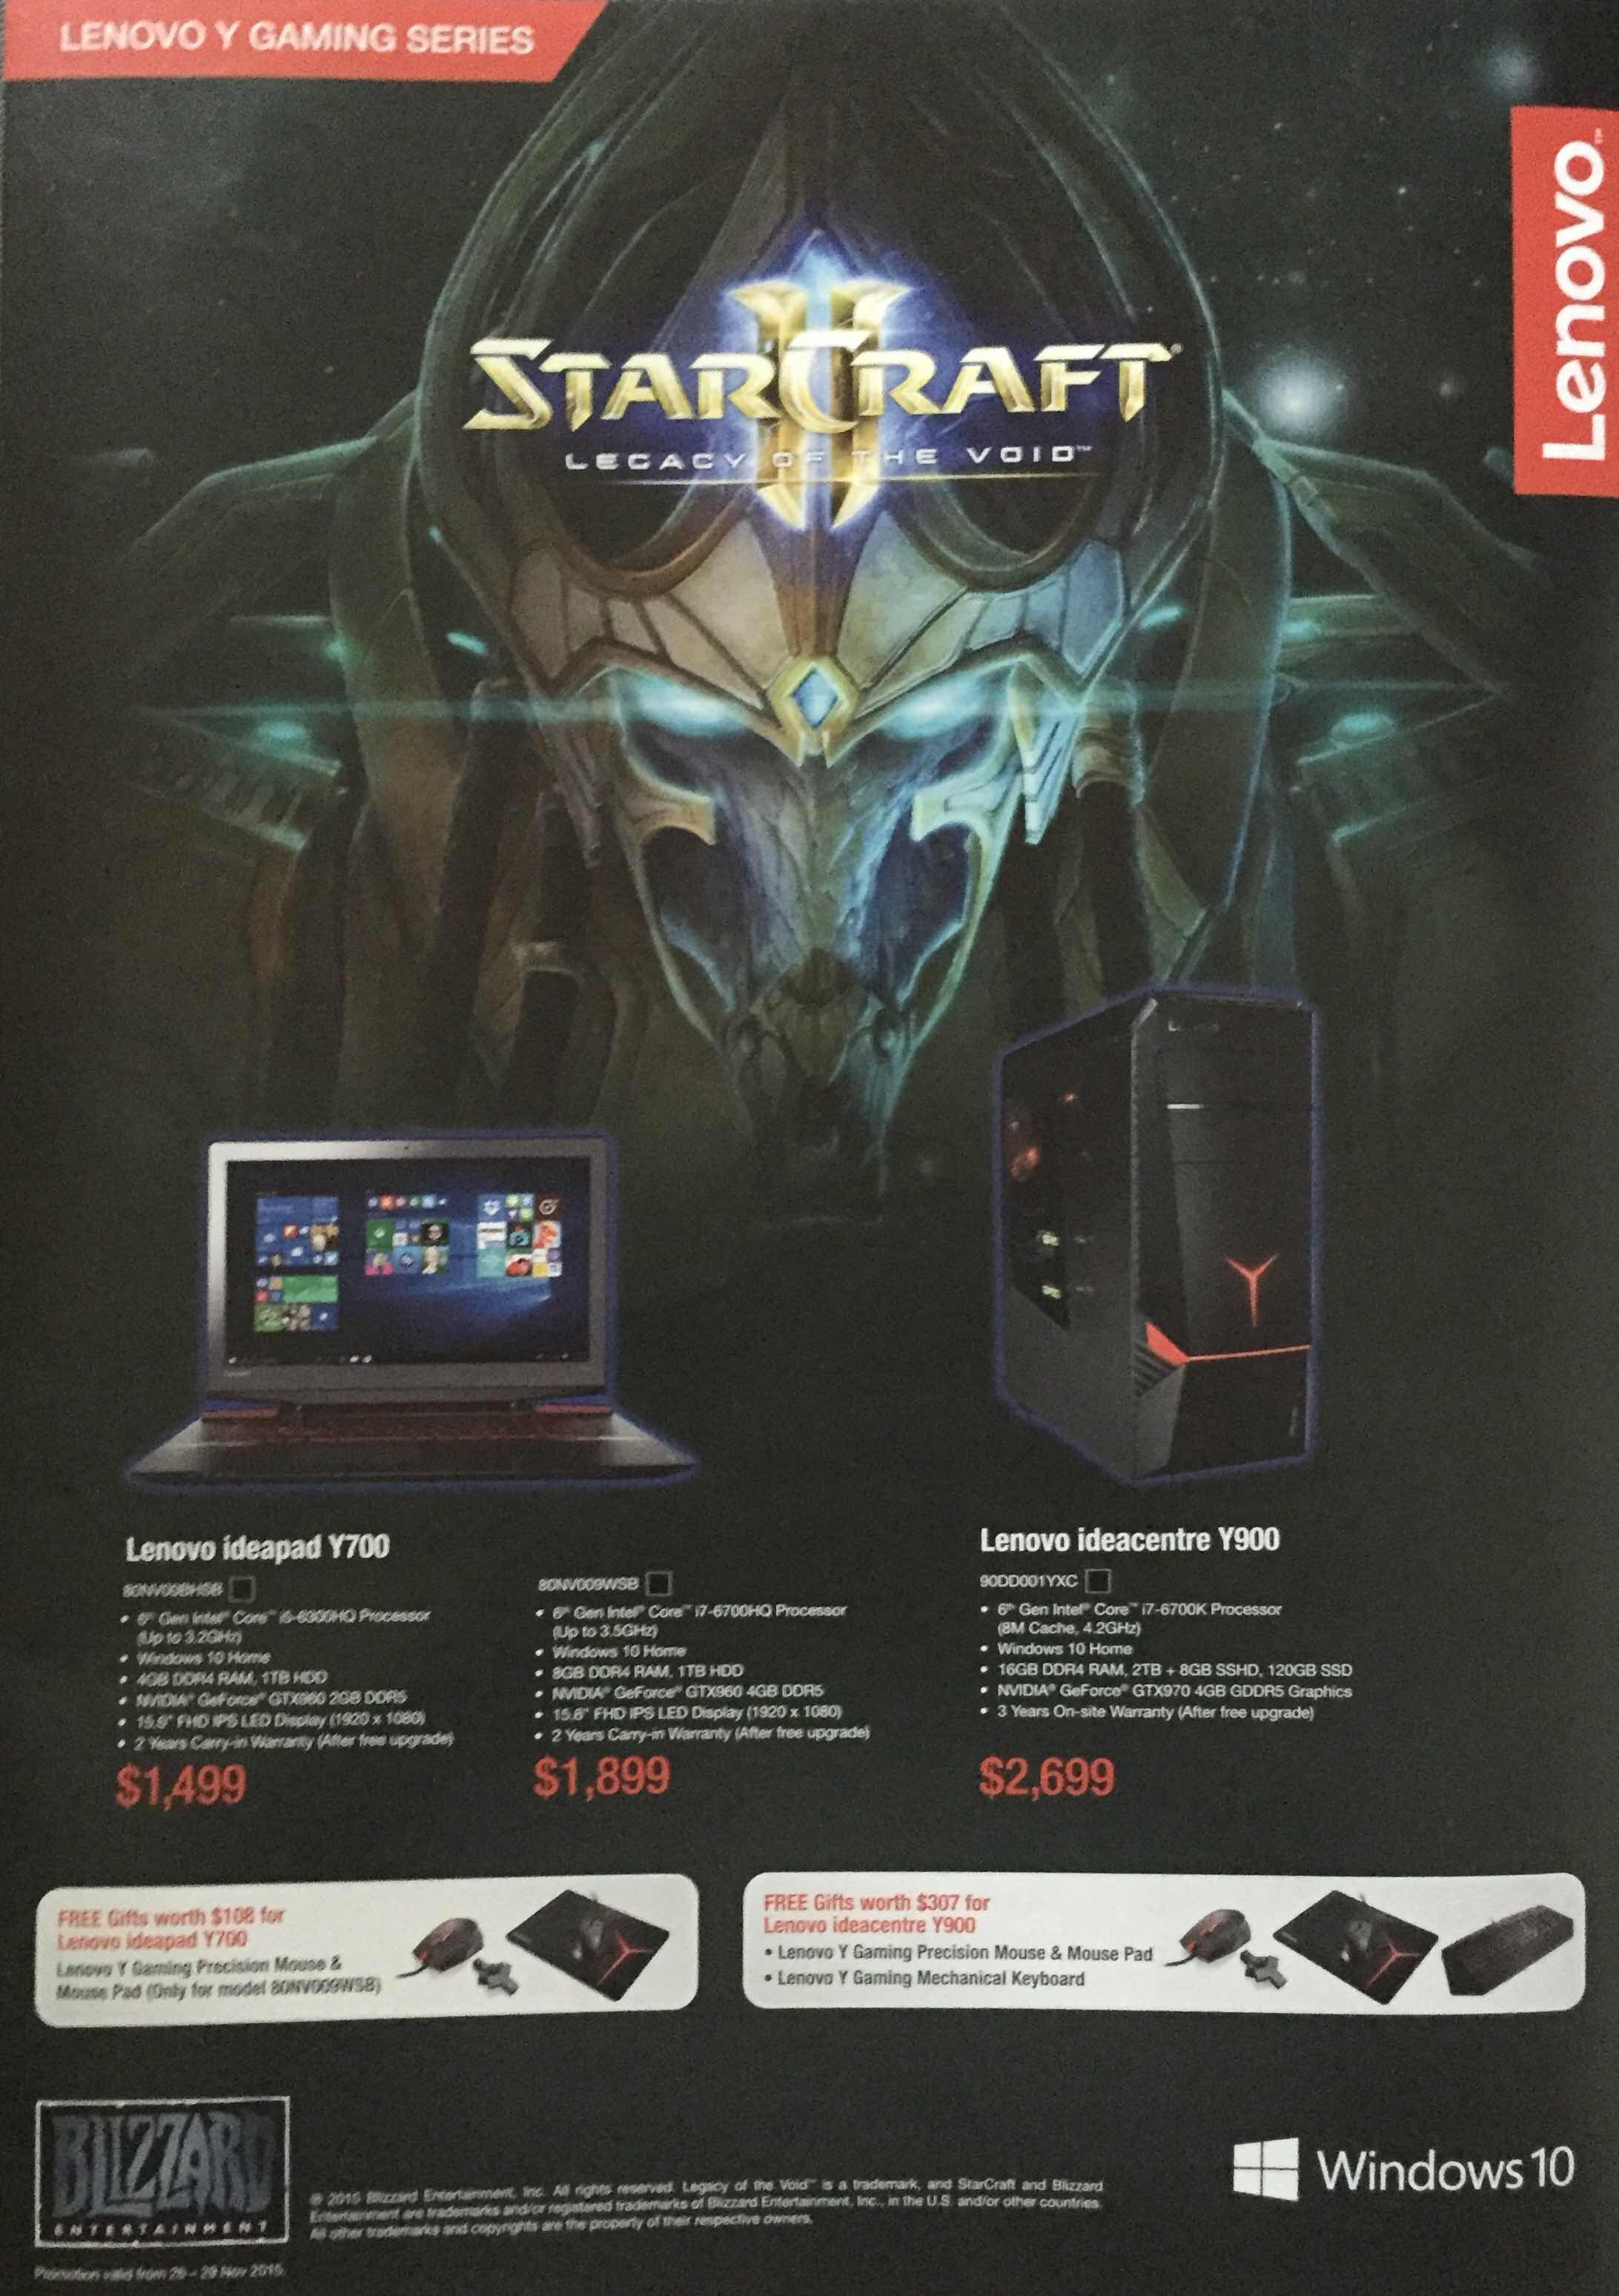 Lenovo SITEX 2015 - pg6 - LENOVO Y GAMING SERIES